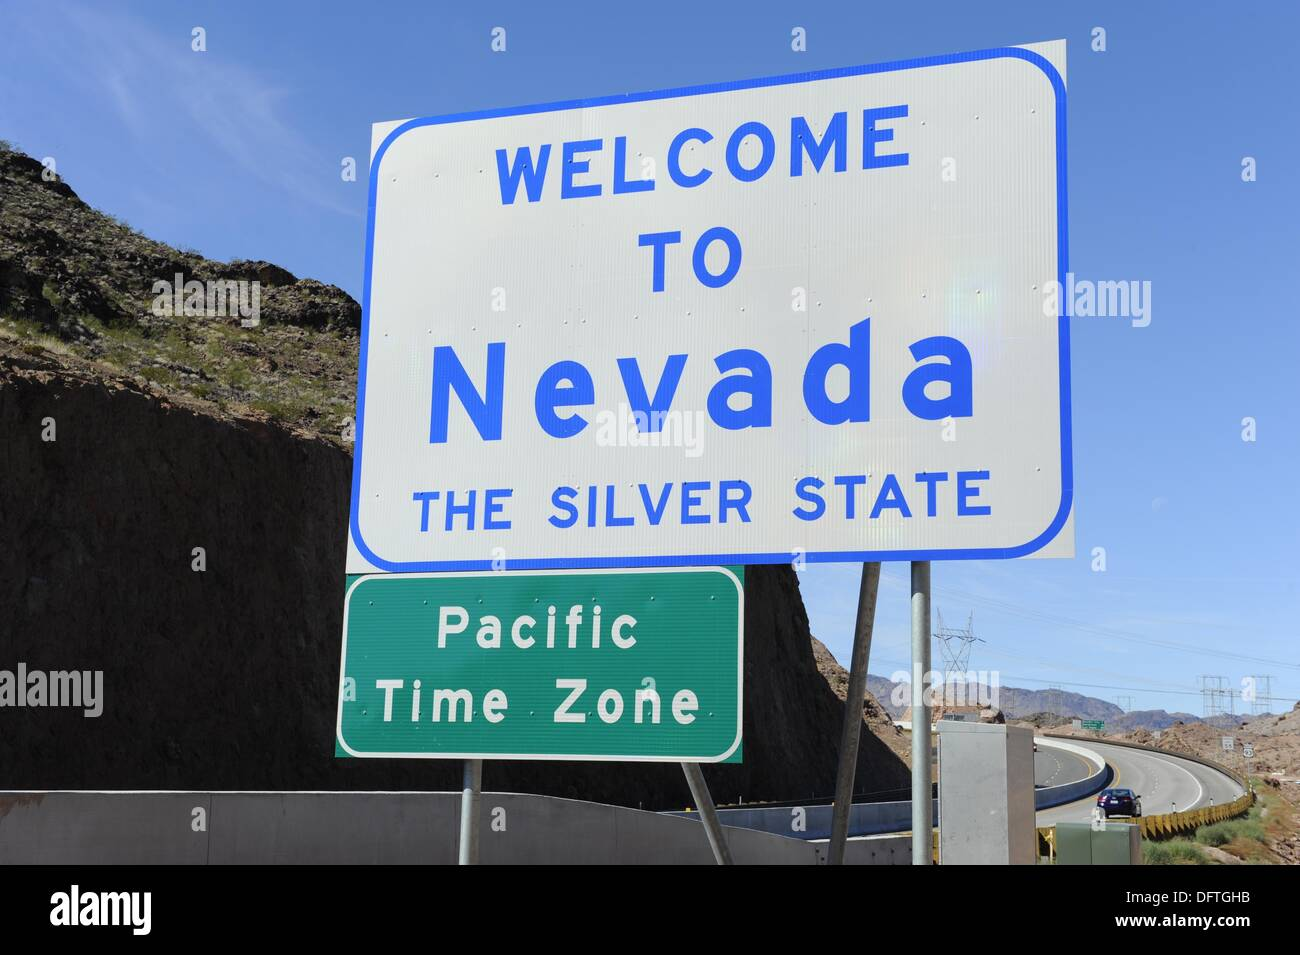 Welcome To Nevada State Border Sign Stock Photo - Image of